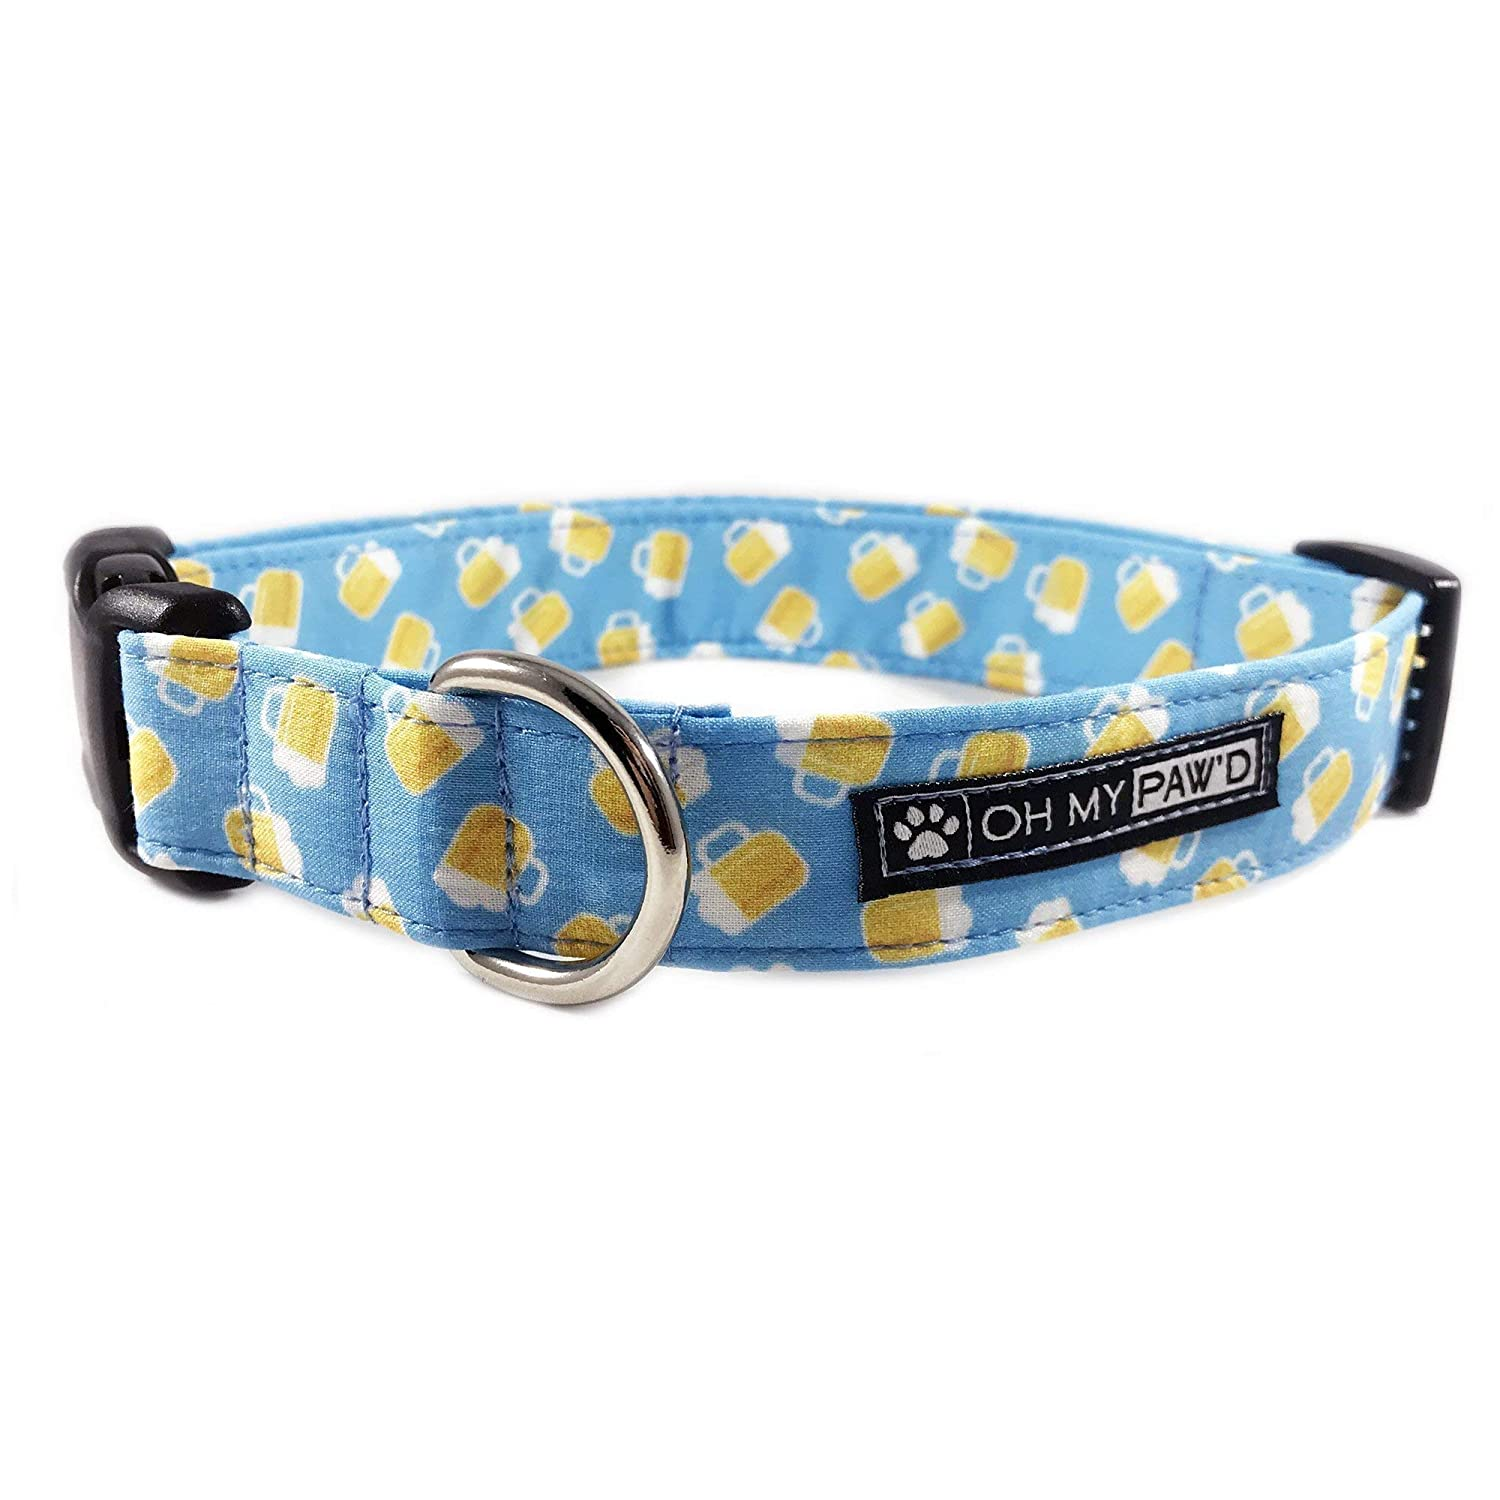 Beer Dog Collar/Cat Collar for Pets Size Large 1 Wide and 15-25 Long by Oh My Paw'd